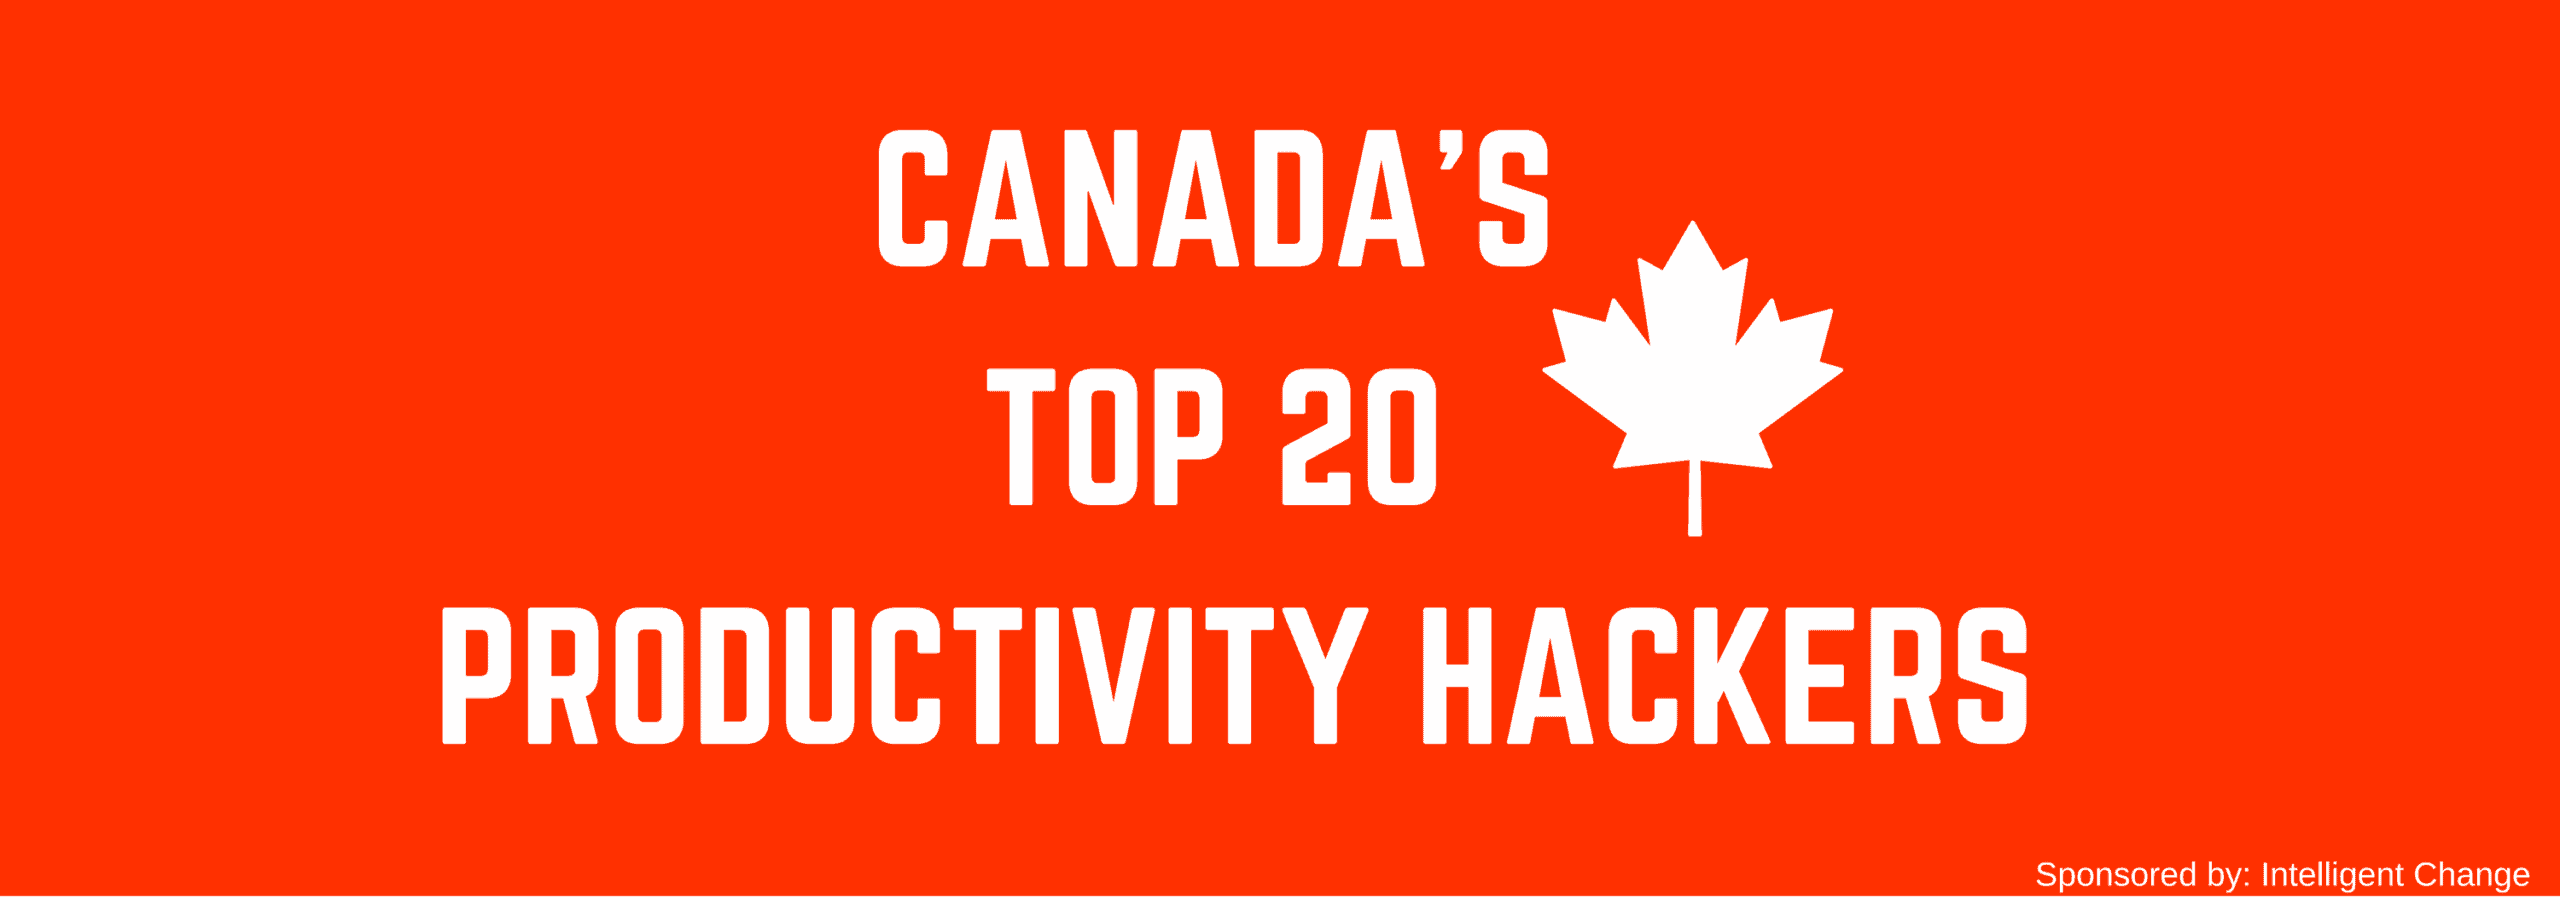 Canada's Top Productivity Hacker: Natu Myers